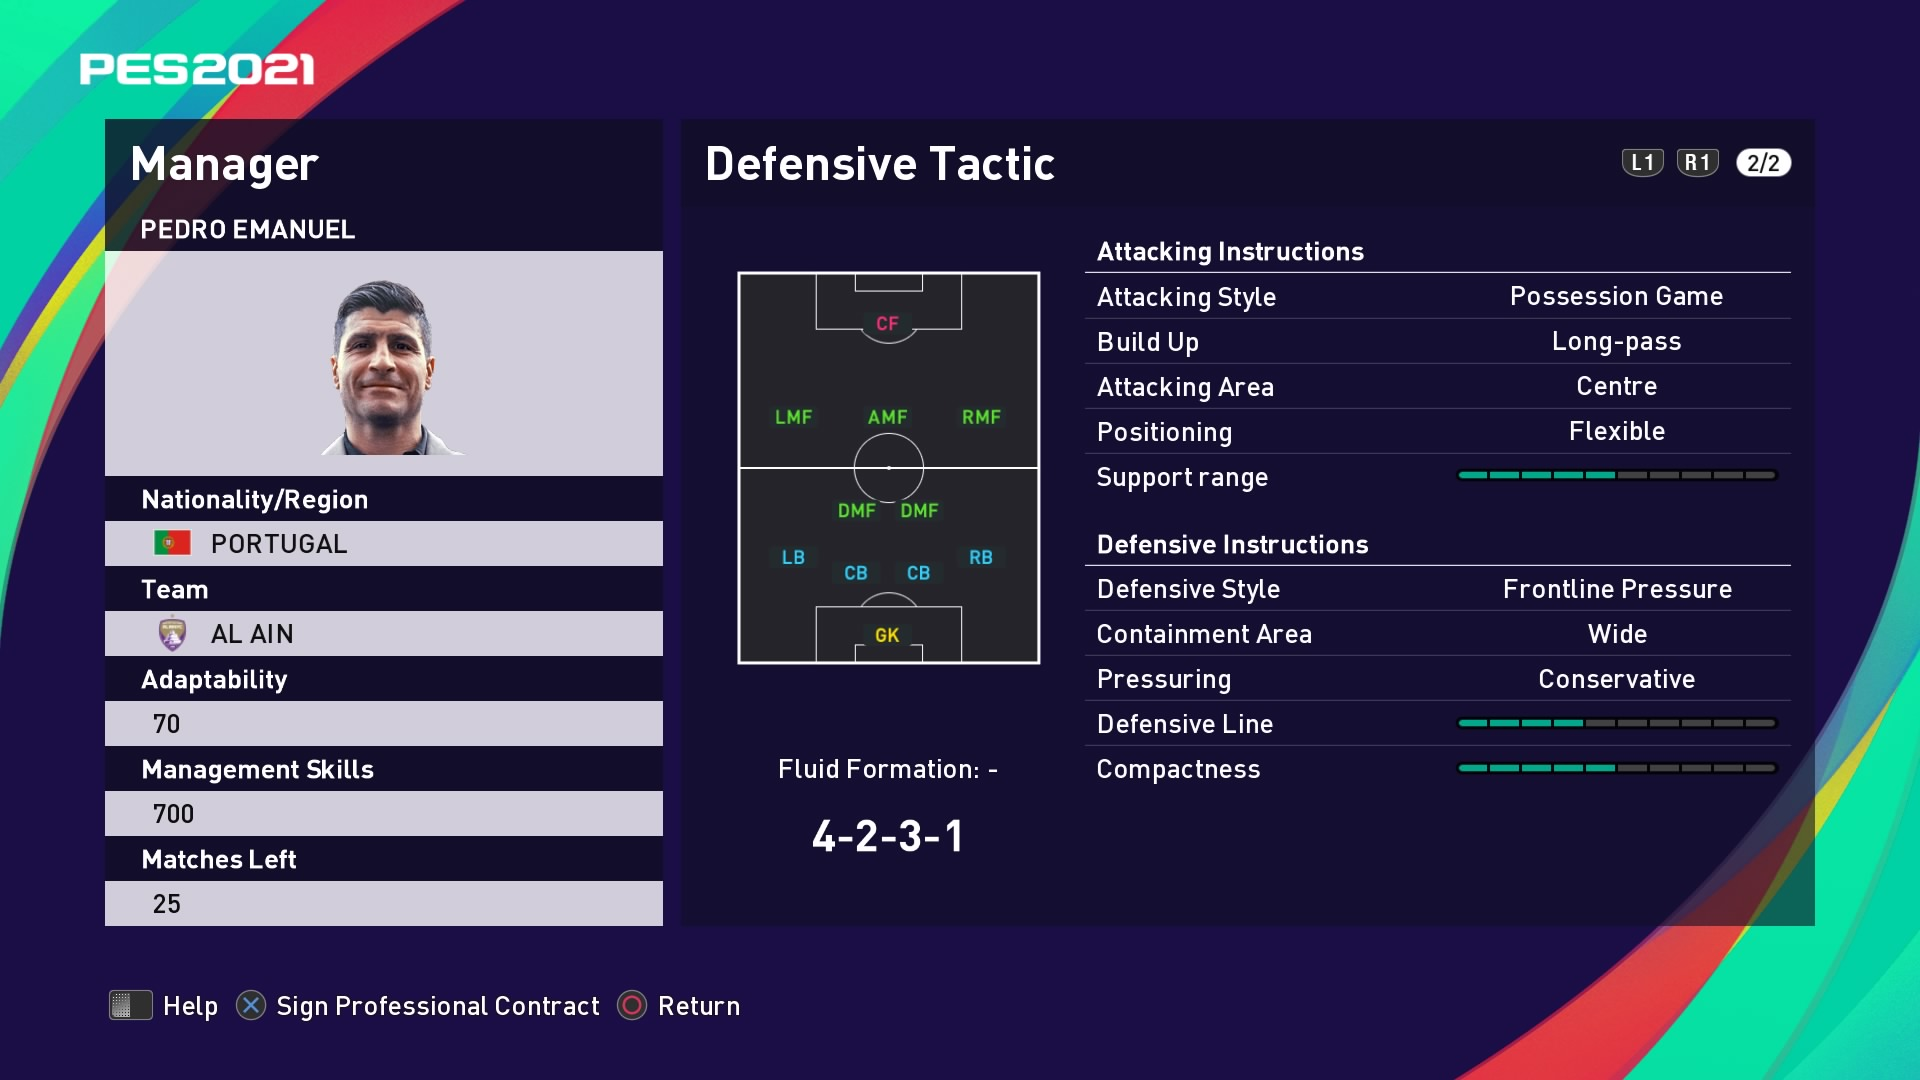 Pedro Emanuel Defensive Tactic in PES 2021 myClub